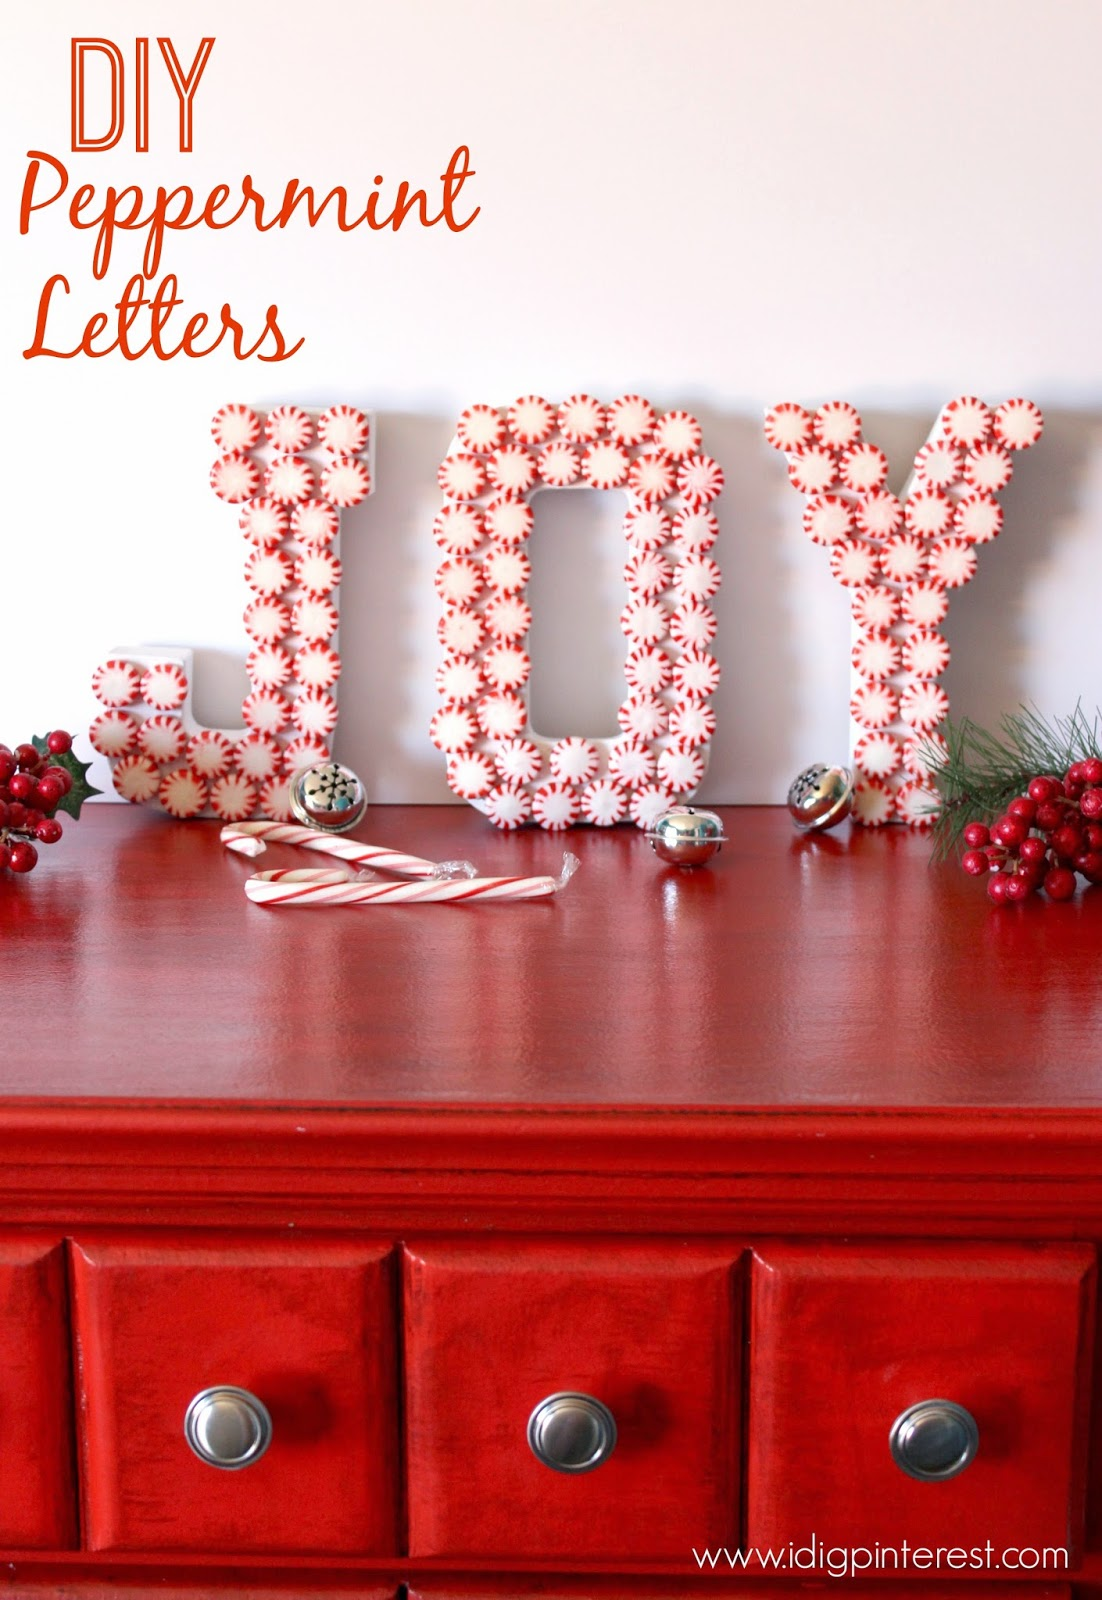 Diy Pinterest Diy Peppermint Joy Letters Christmas Craft I Dig Pinterest